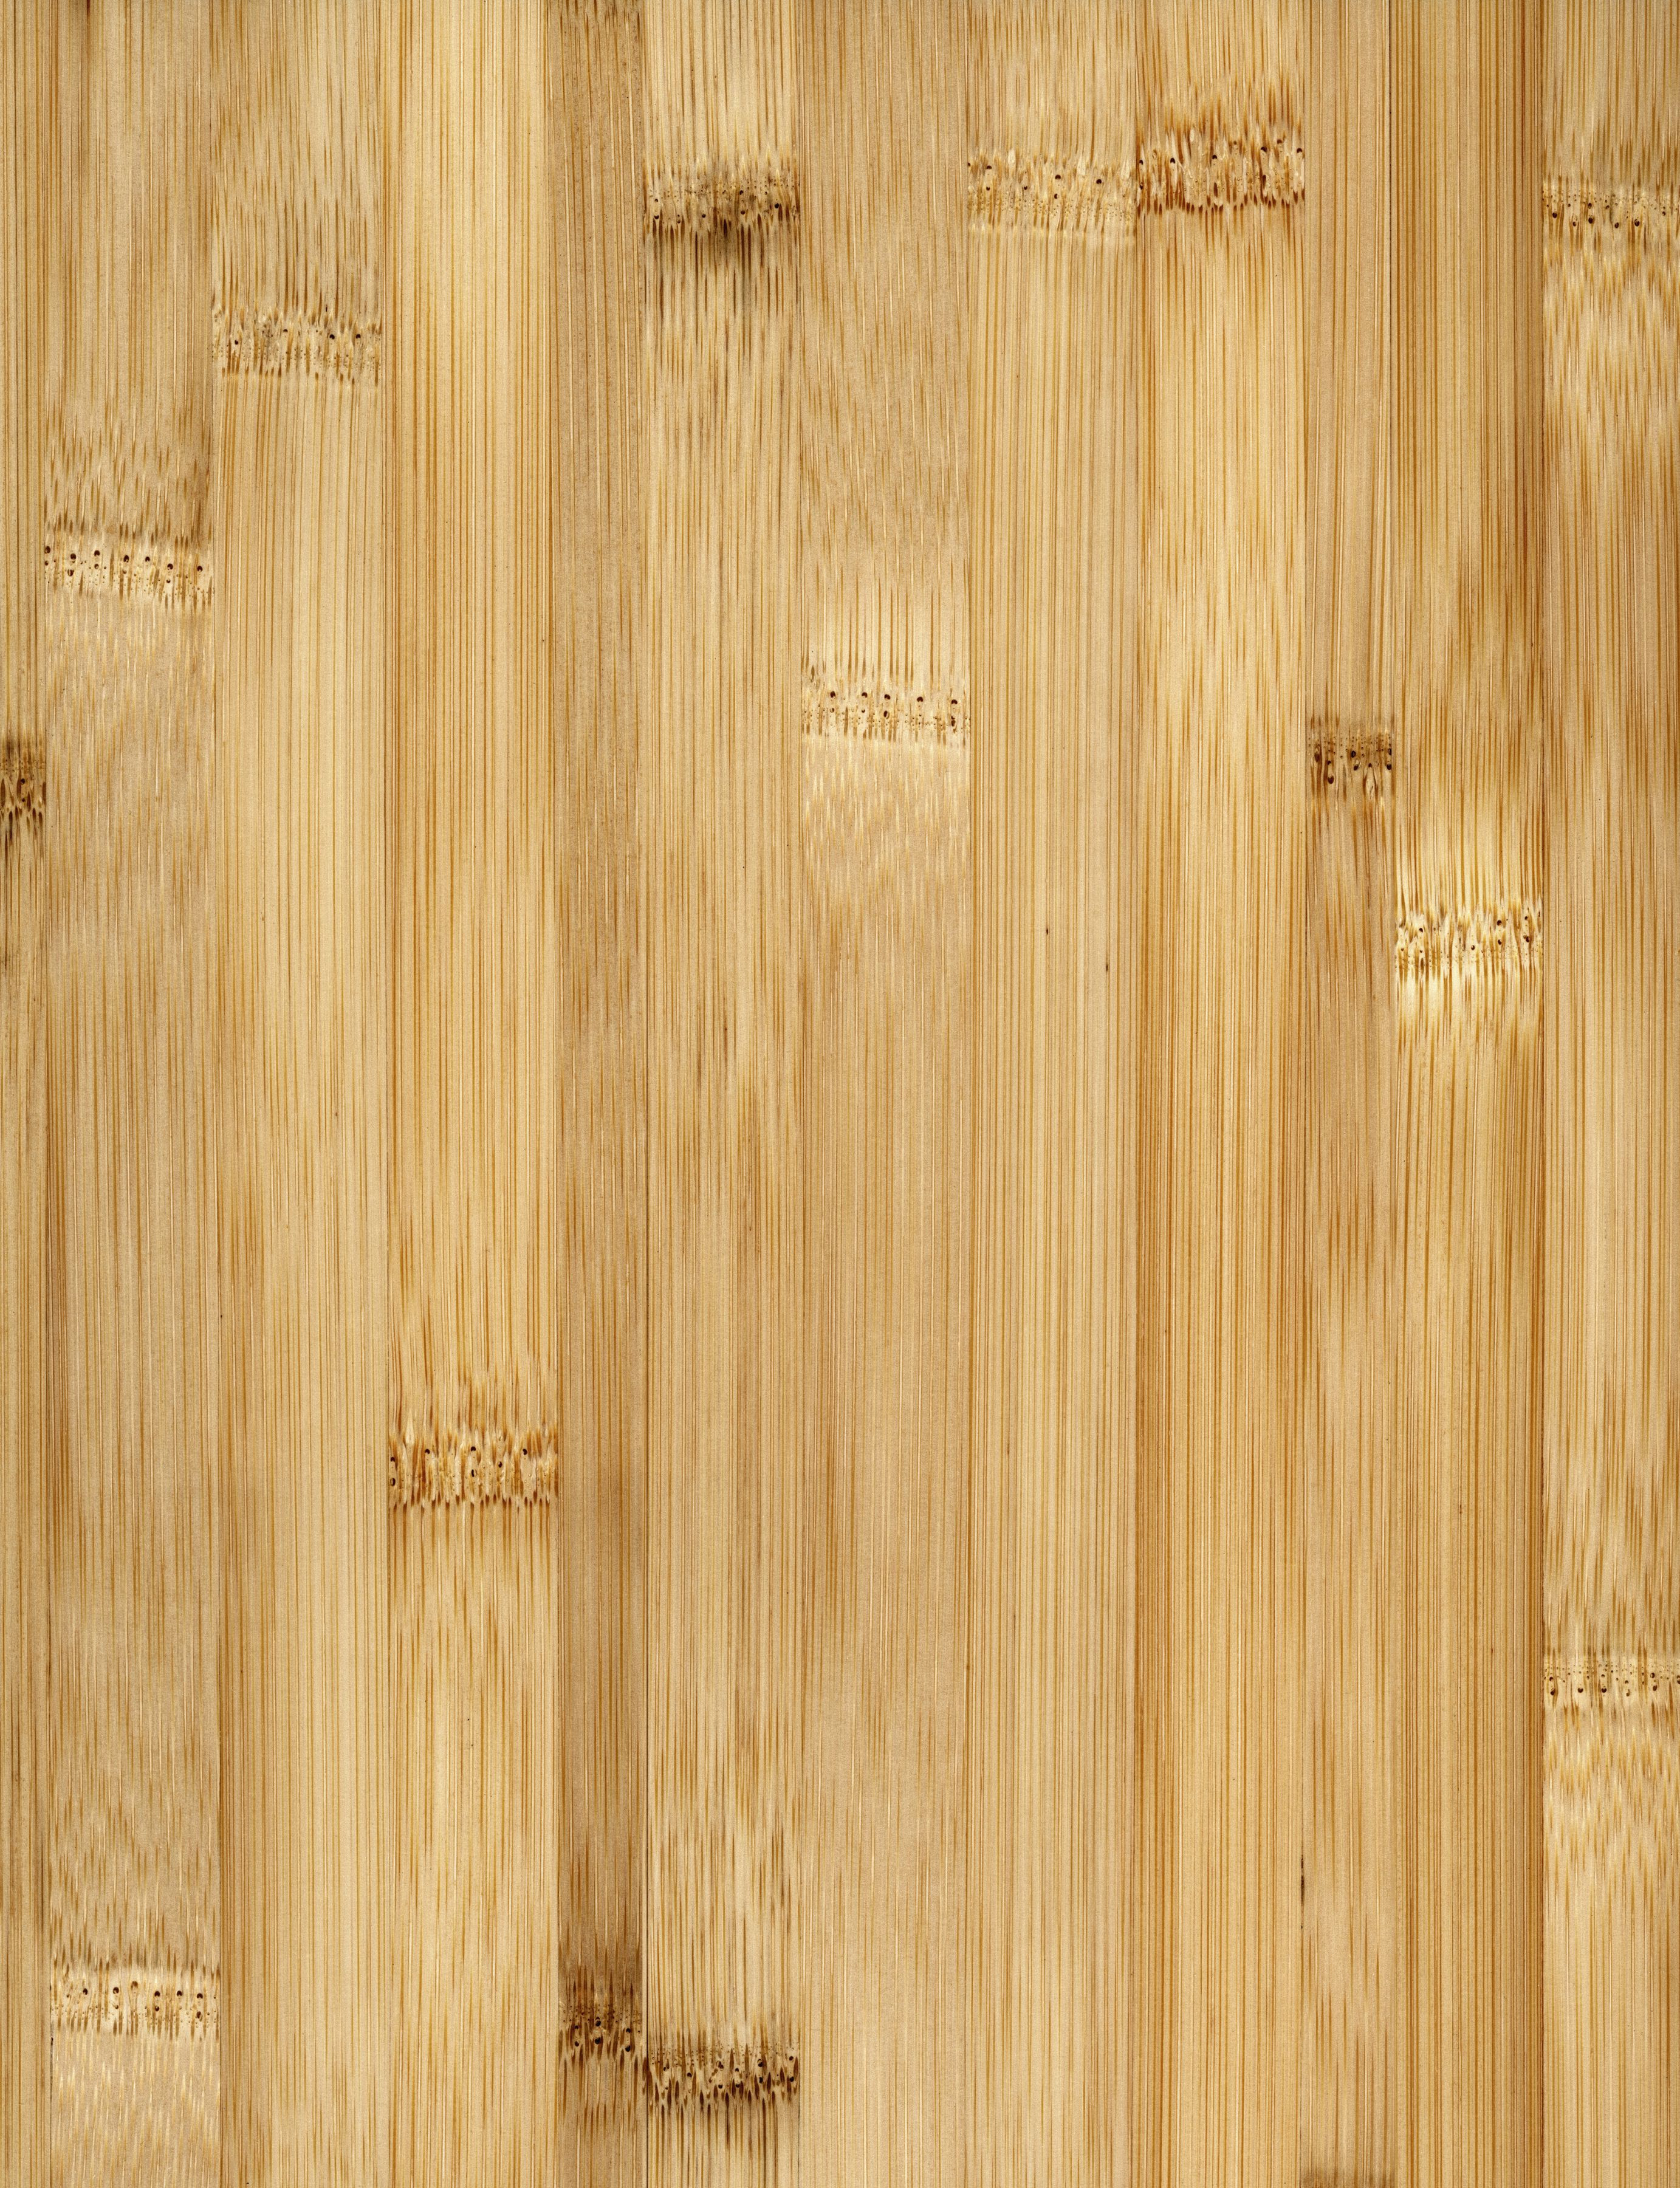 bamboo hardwood flooring reviews of bamboo flooring buying guide throughout bamboo floor full frame 200266305 001 59a4517bd963ac00118a3d9f